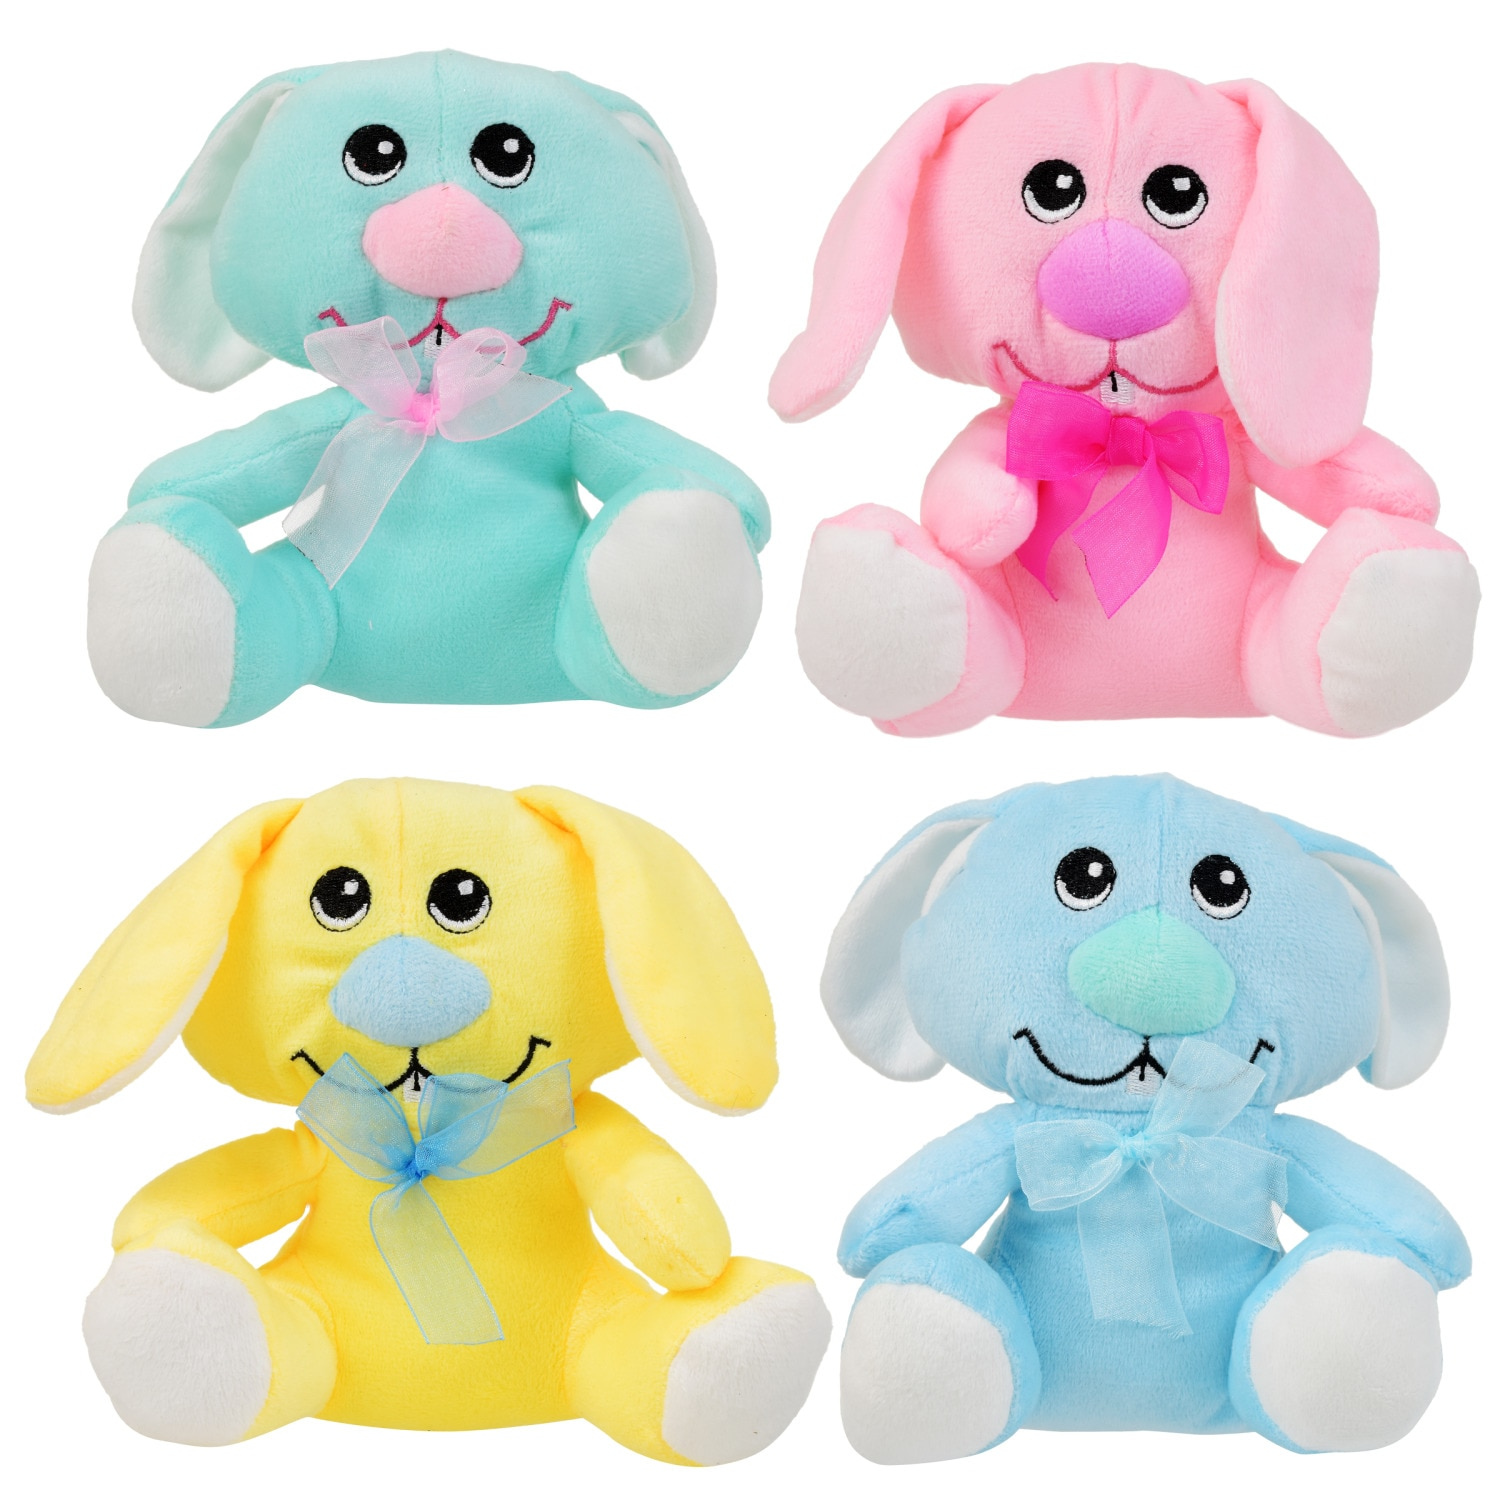 Big-Nosed Plush Bunnies in Pastel Colors, 6 in.